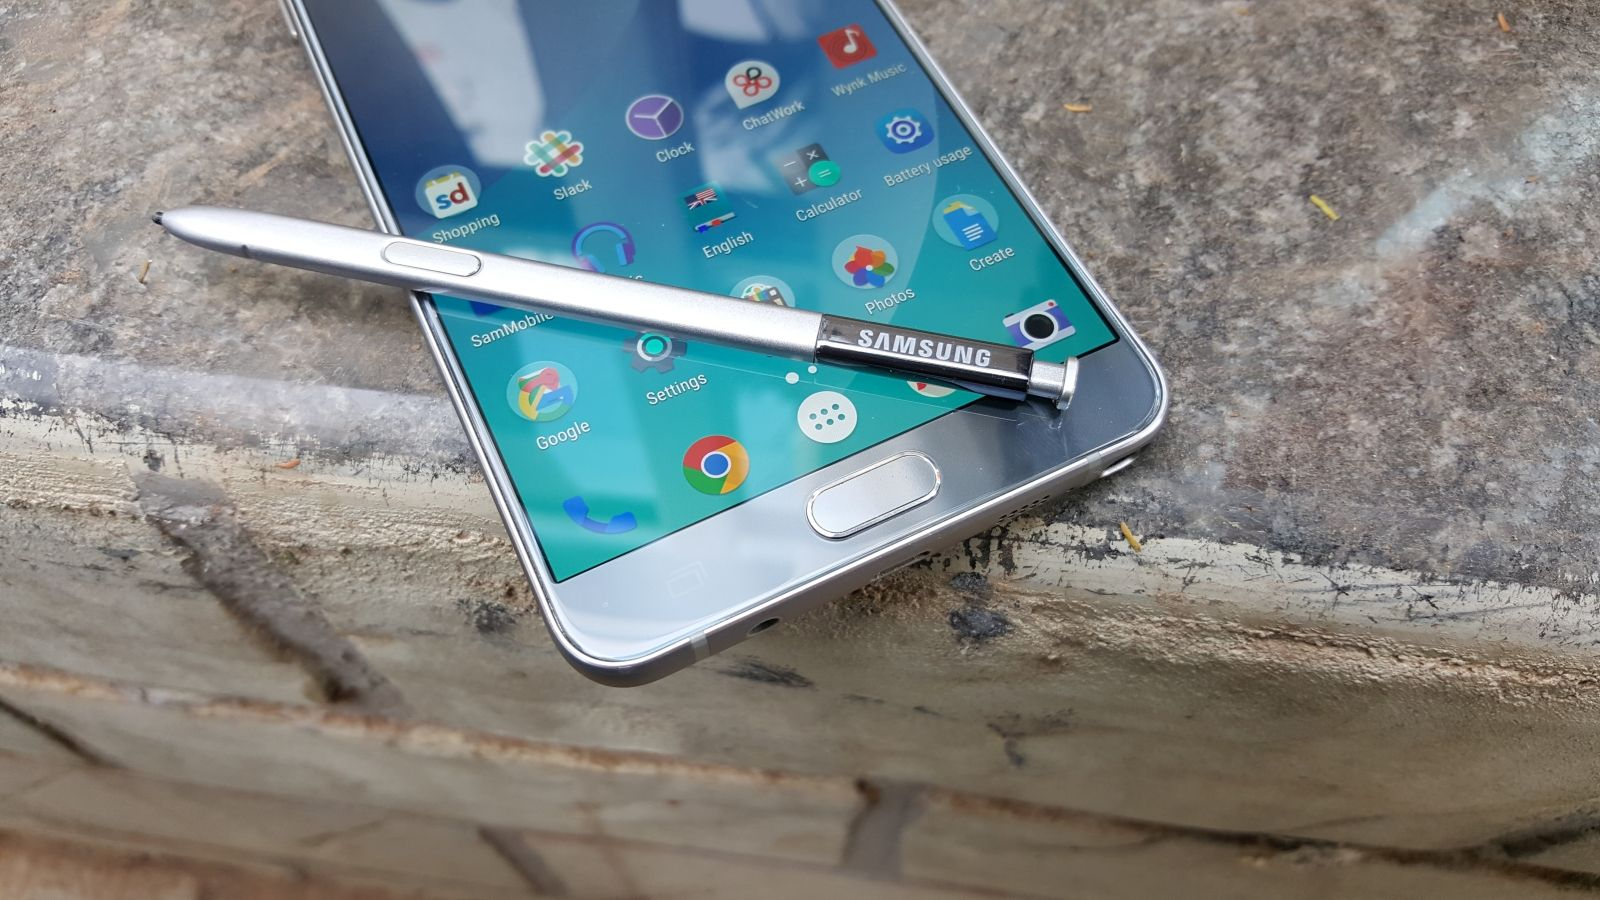 Samsung launches a 128GB Galaxy Note 5 Winter Edition in South Korea